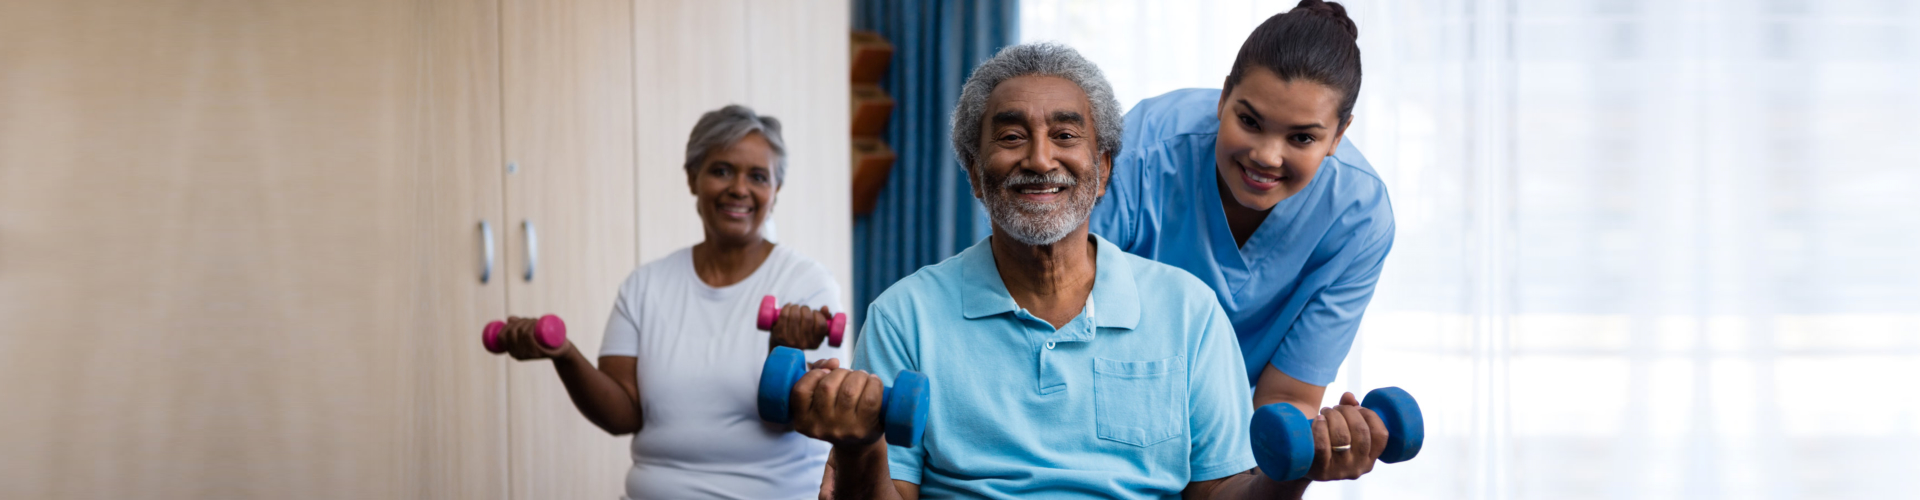 Nurse training seniors in lifting dumbbells